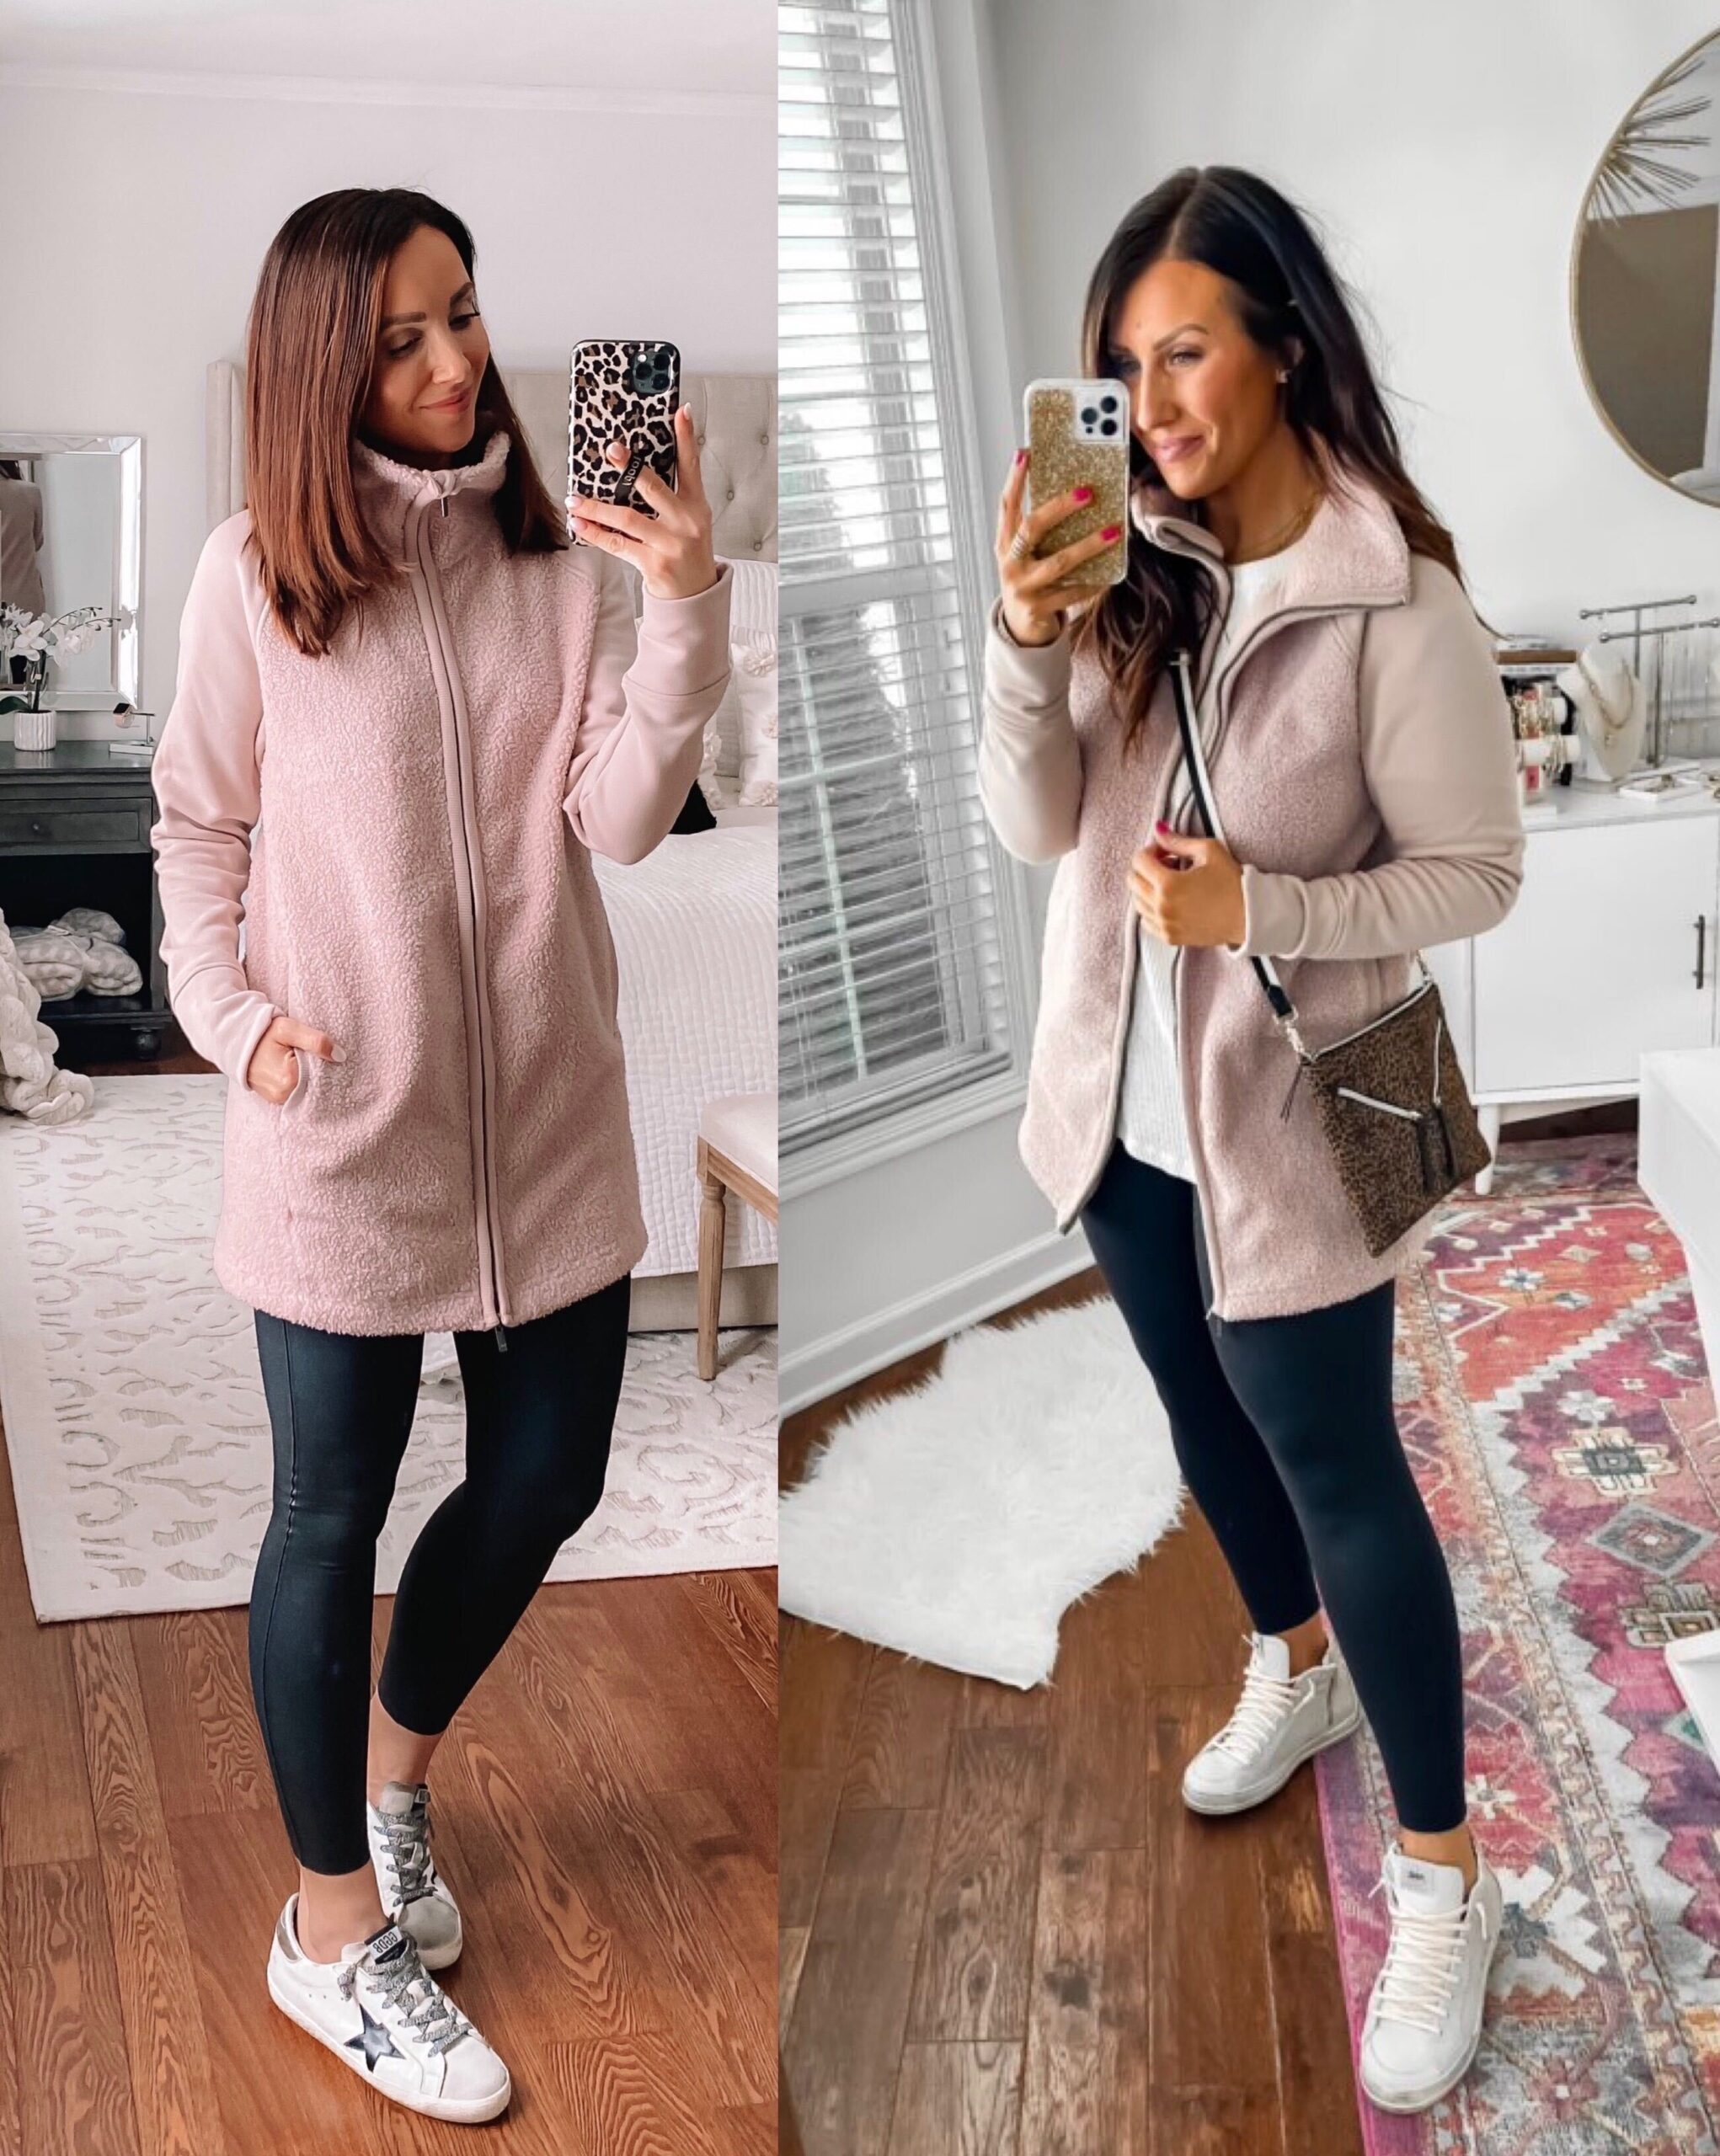 target style, target sherpa with faux leather leggings